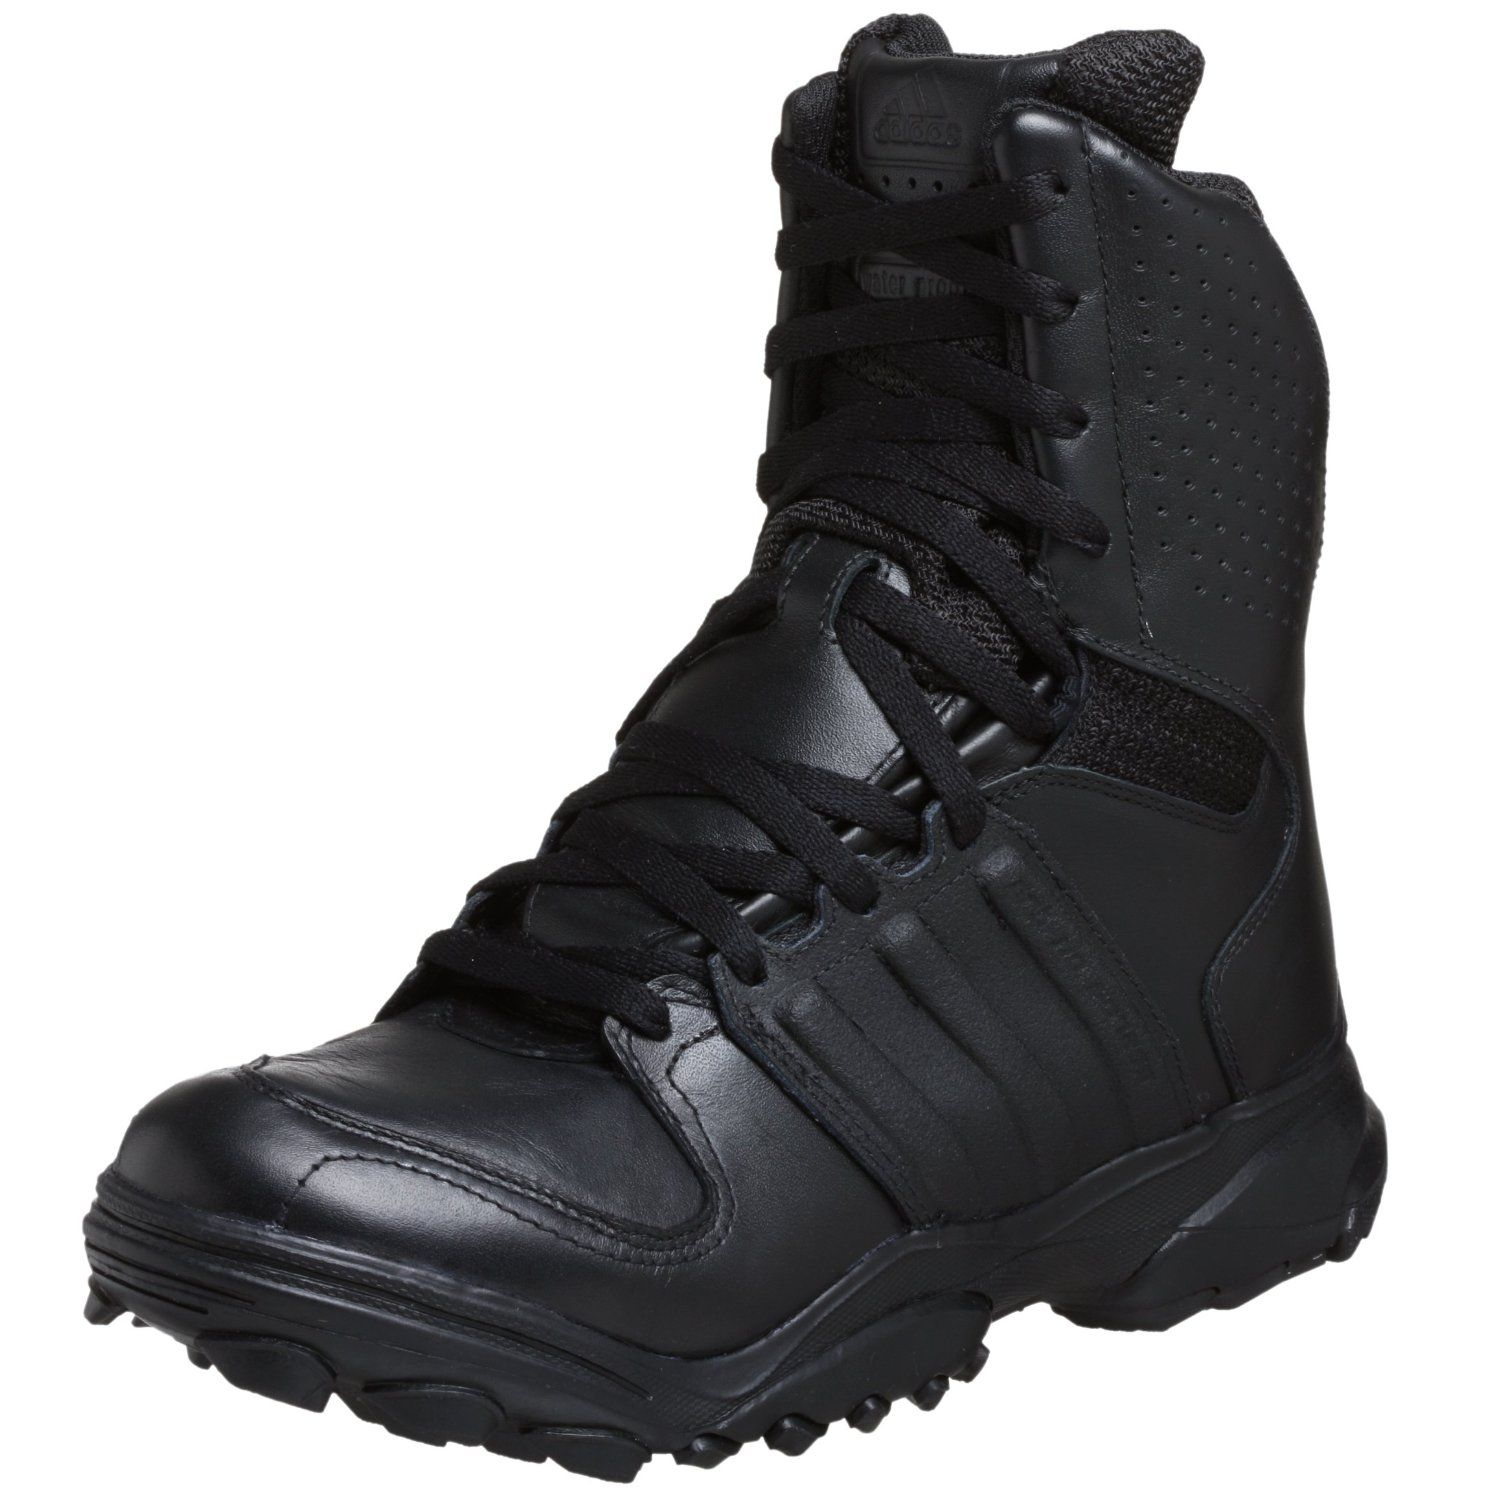 the best attitude 5226b 4837a Adidas Tactical GSG9 boots  150 Looks like these would be great for running  and tactical rolling in!